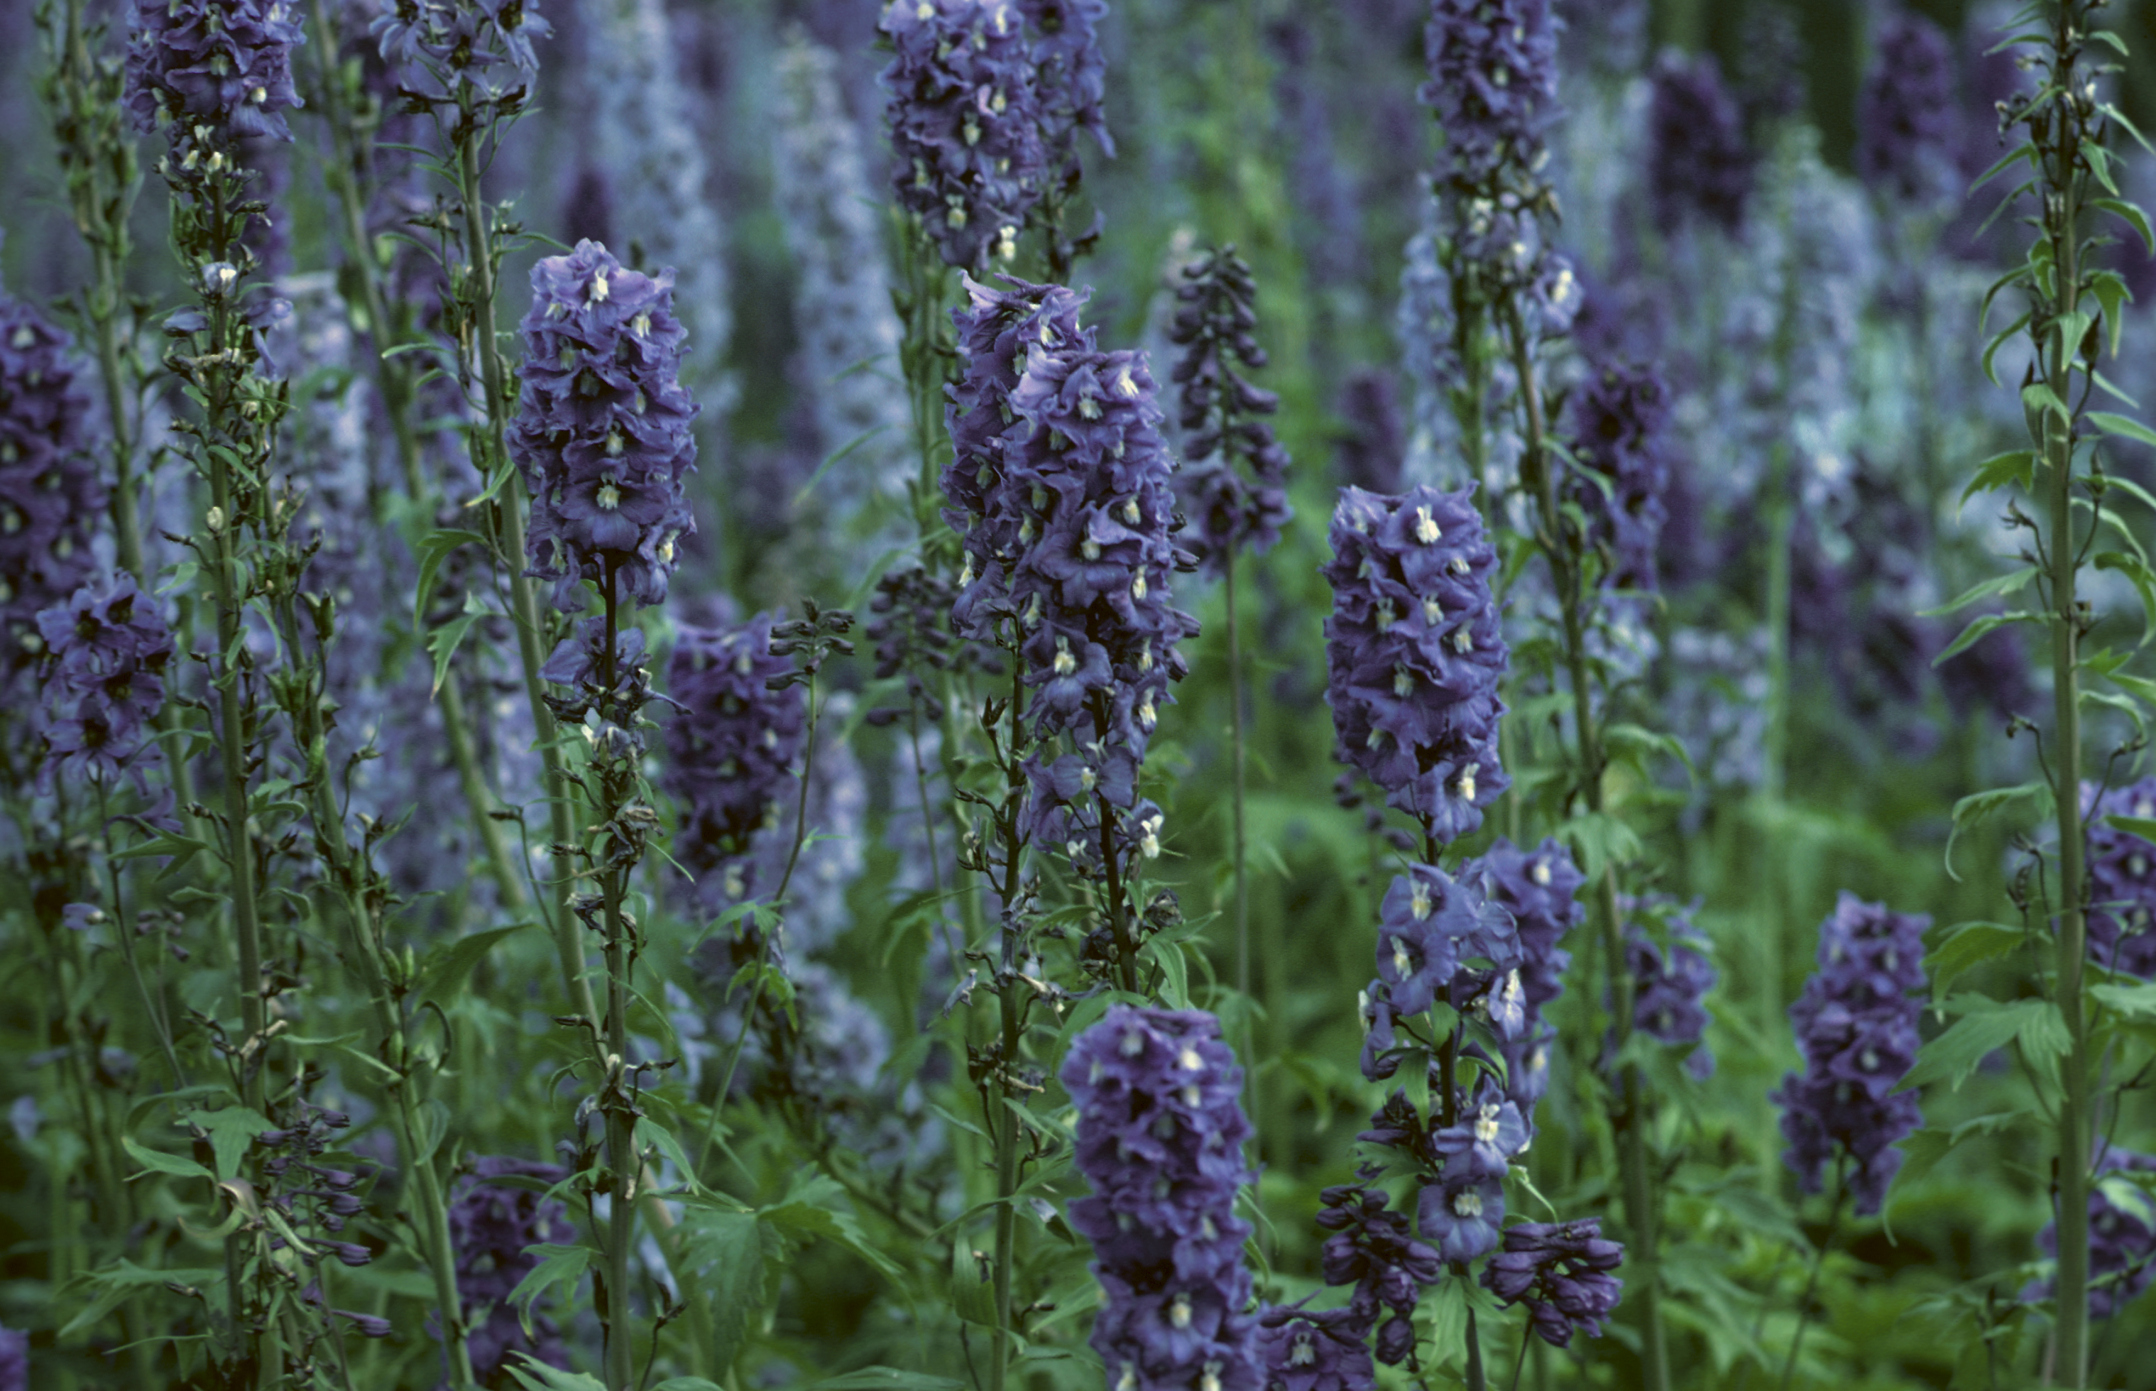 When Does Lavender Bloom? | Home Guides | SF Gate